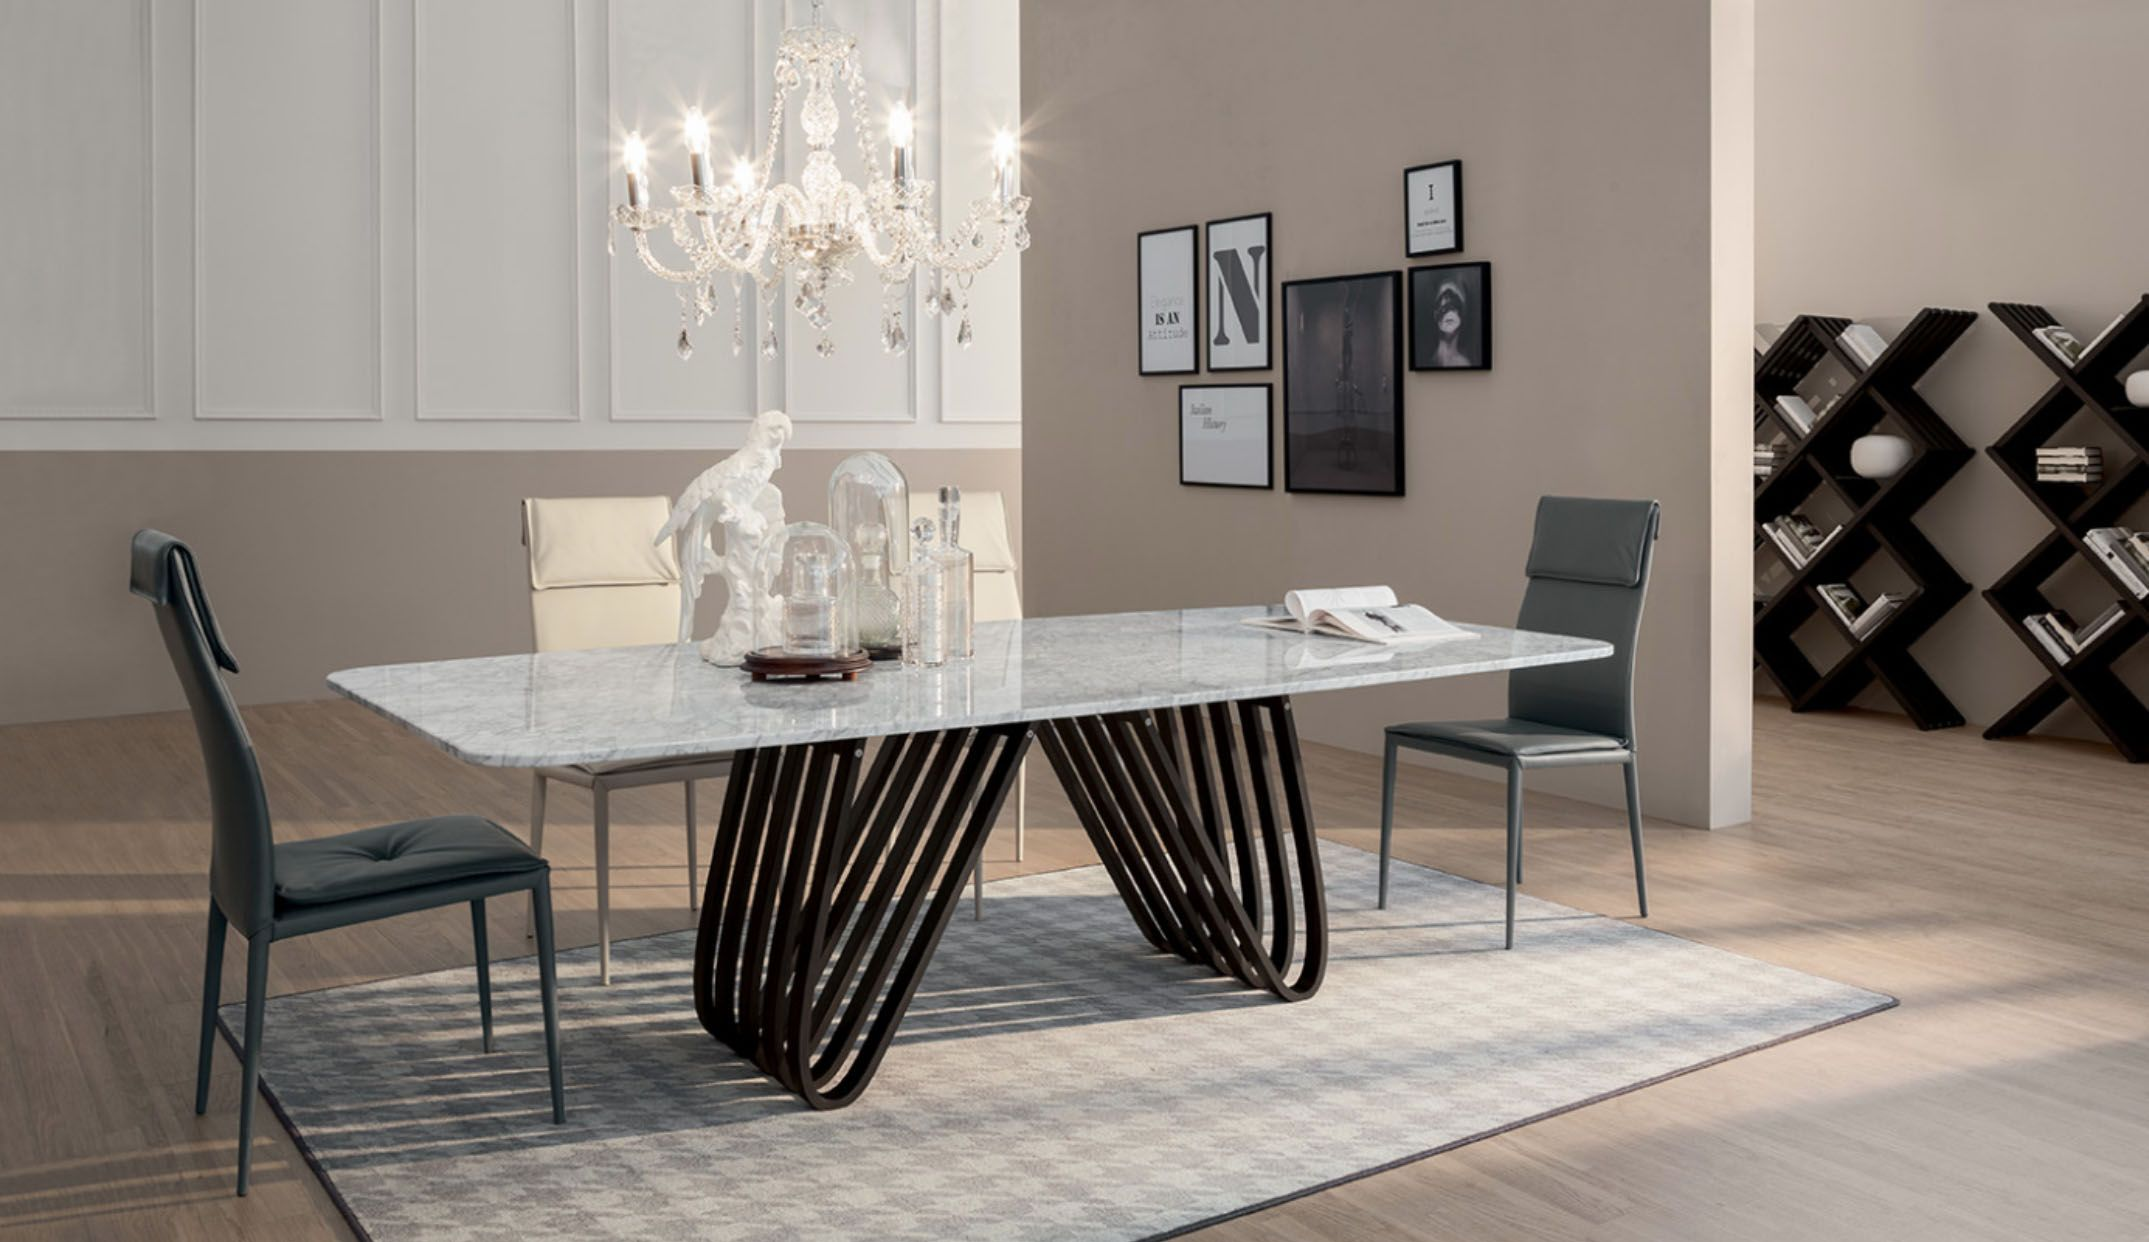 Tonin Casa Arpa Dining Table Available At Juxta Interiors Hessle East Riding Of Yorkshire